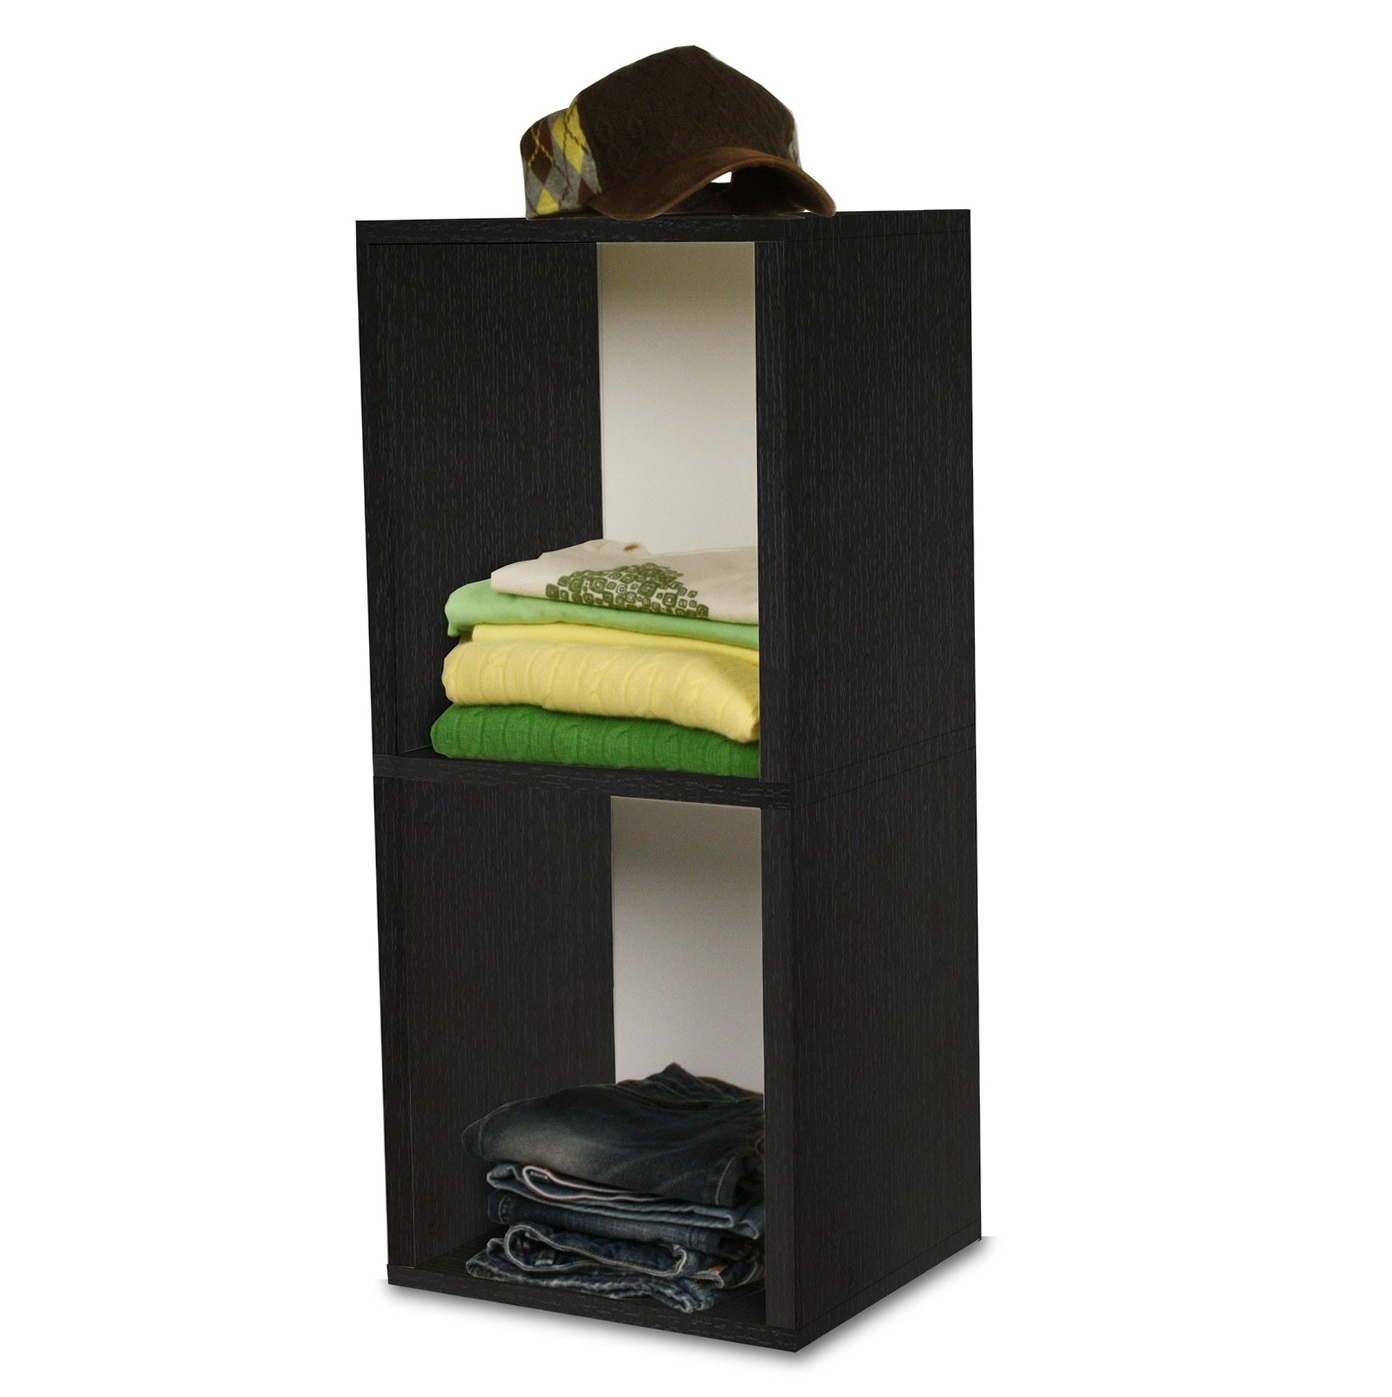 Permalink to 2 Shelf Bookcase Black